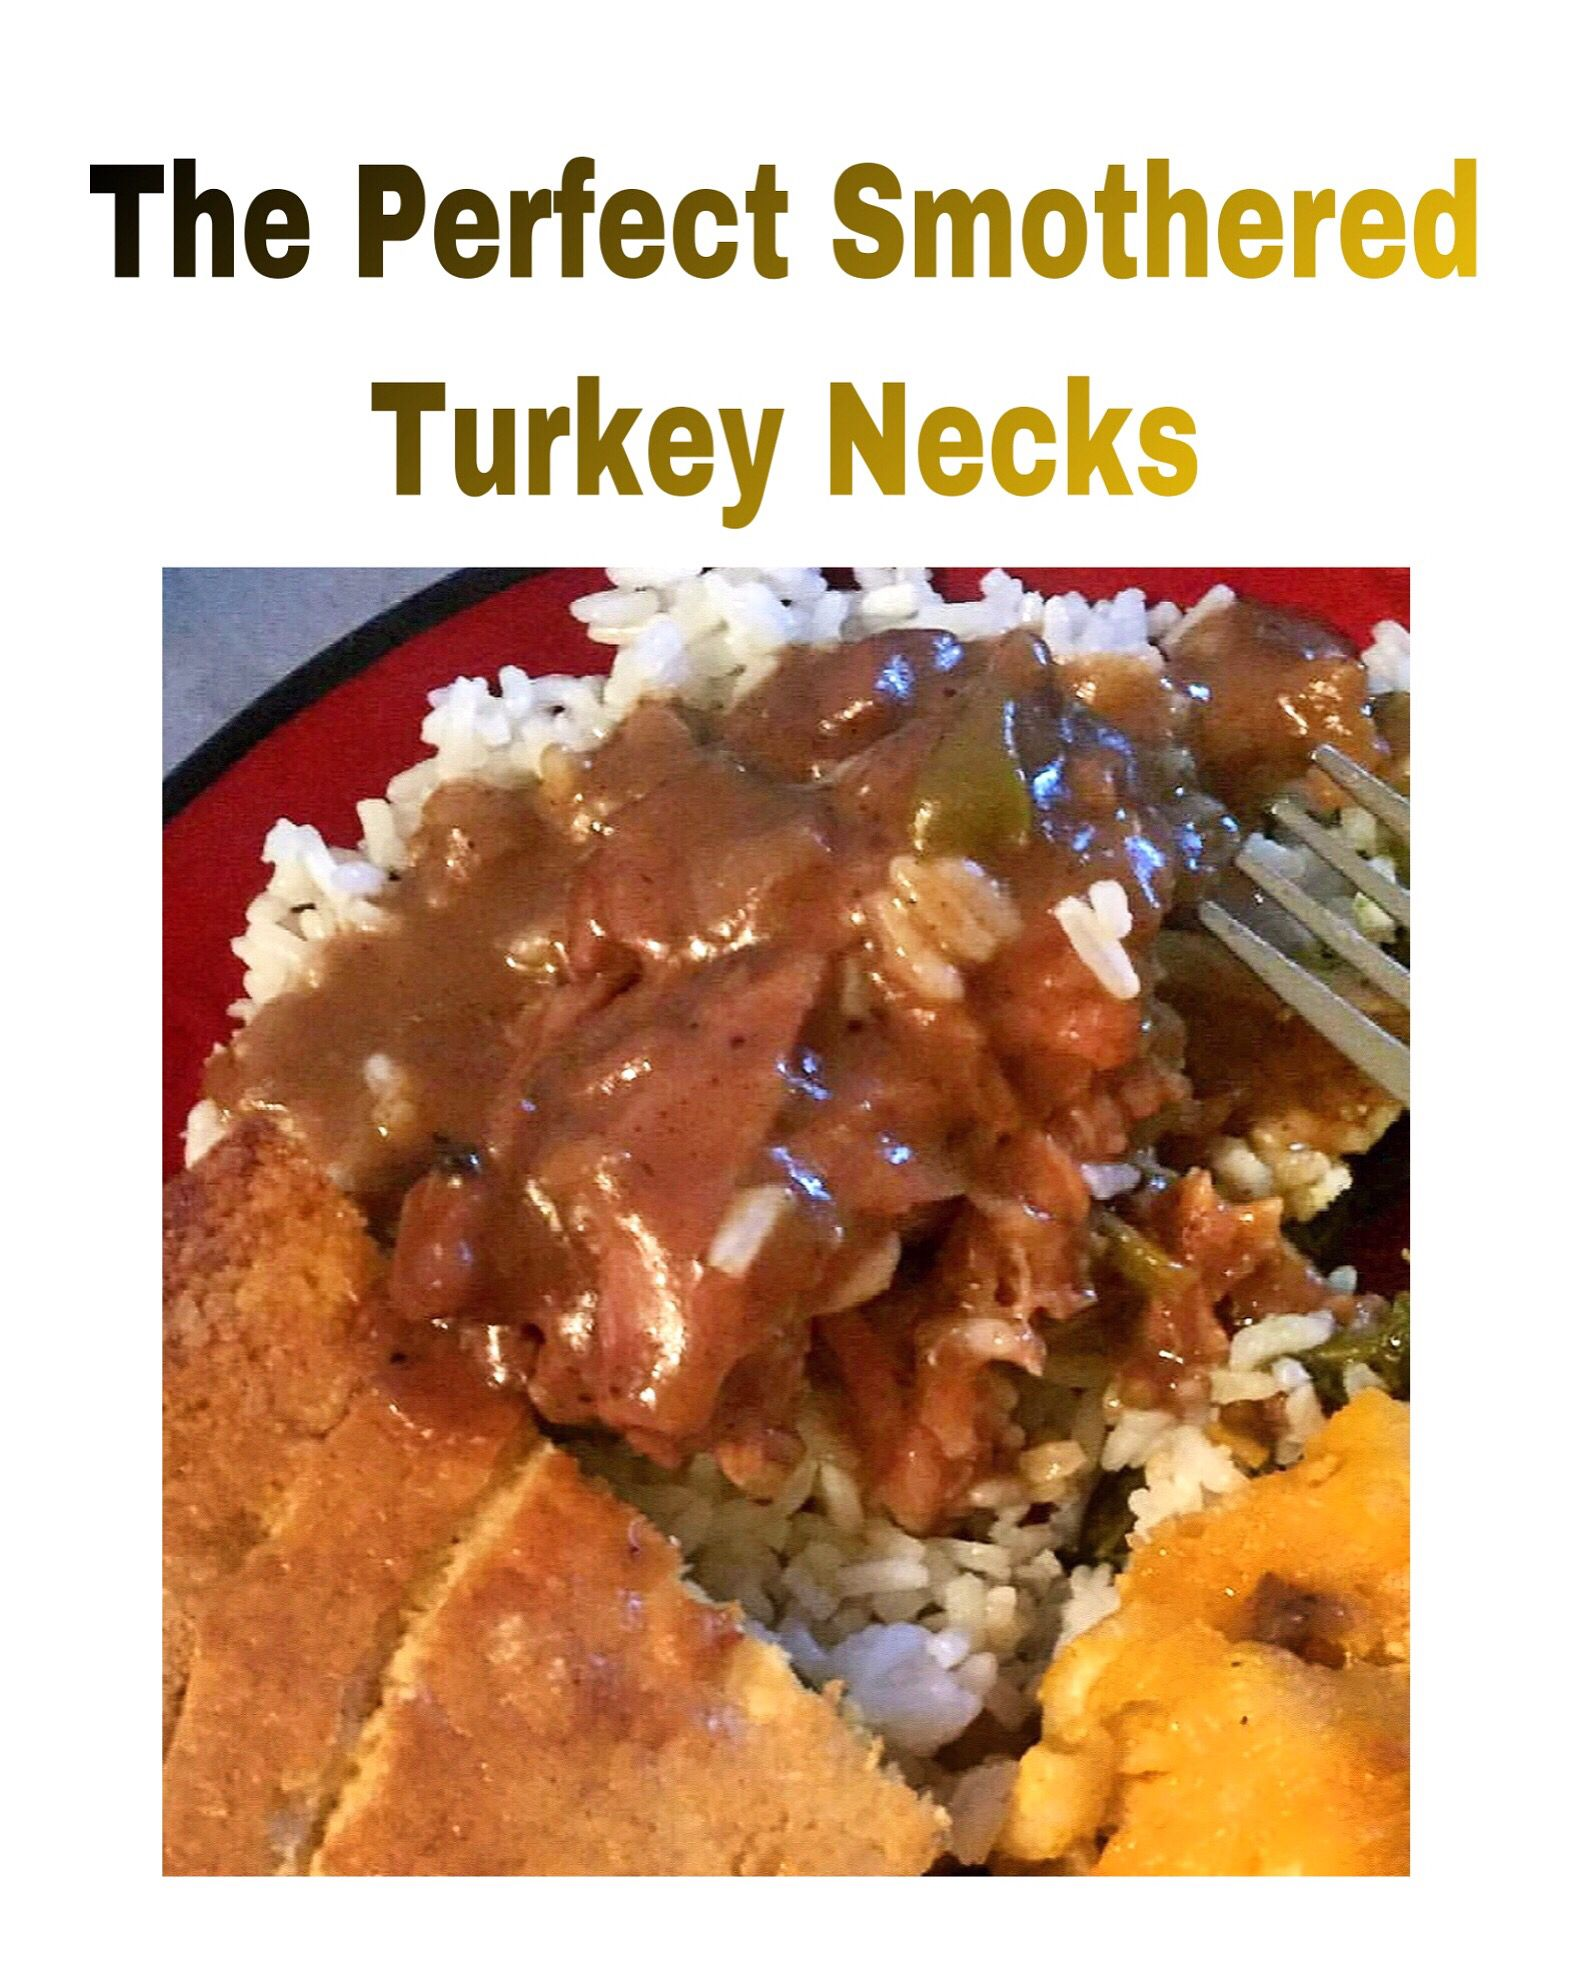 Ladylife.blog To See The Perfect Smothered Turkey Necks